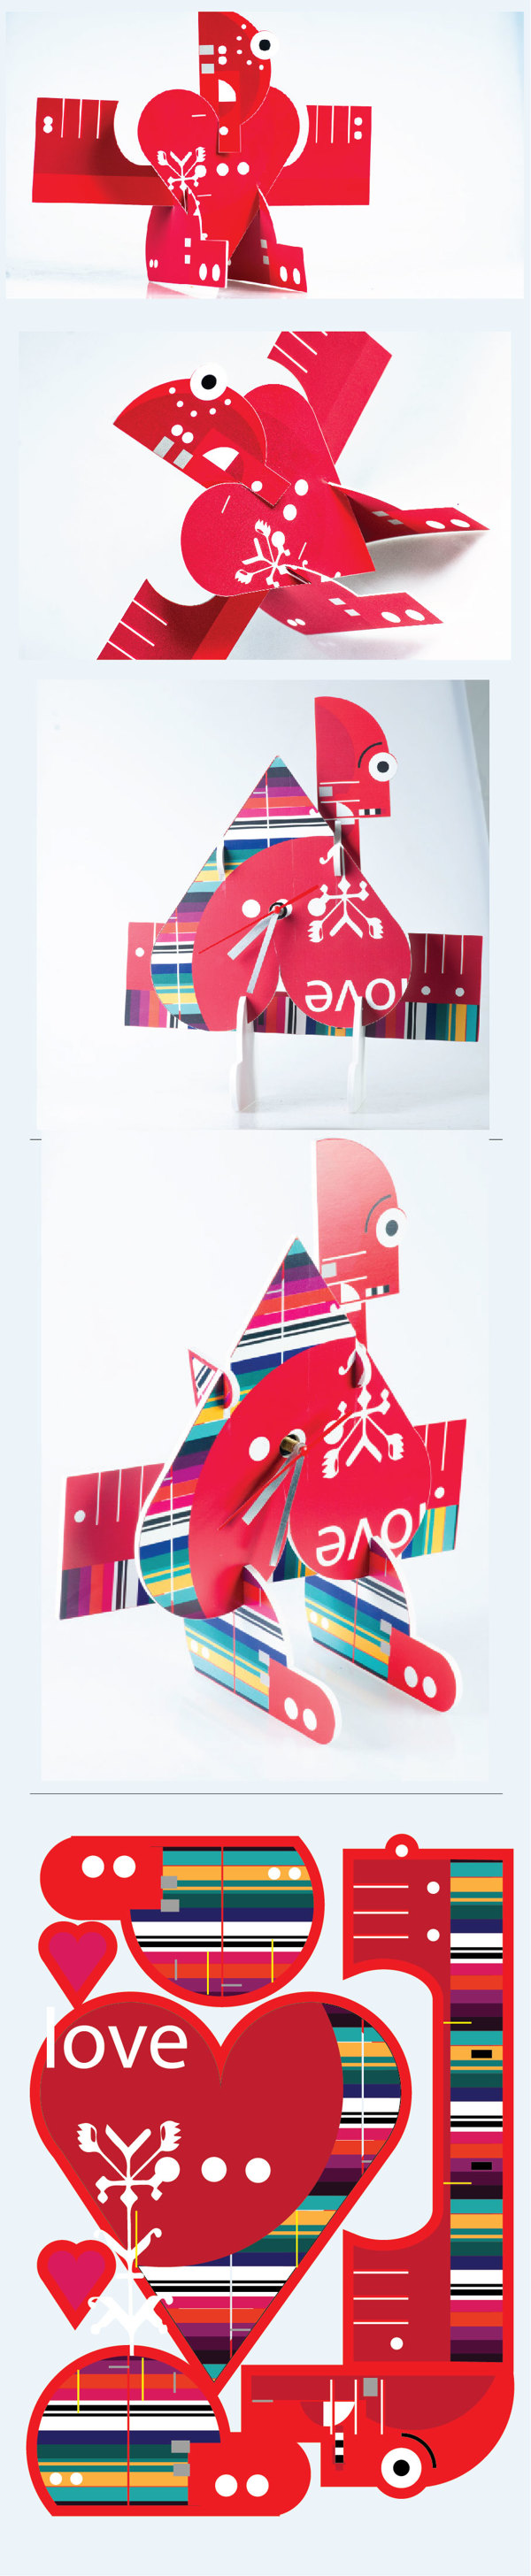 Welcome My Love Toy by evin eva pesic, via Behance